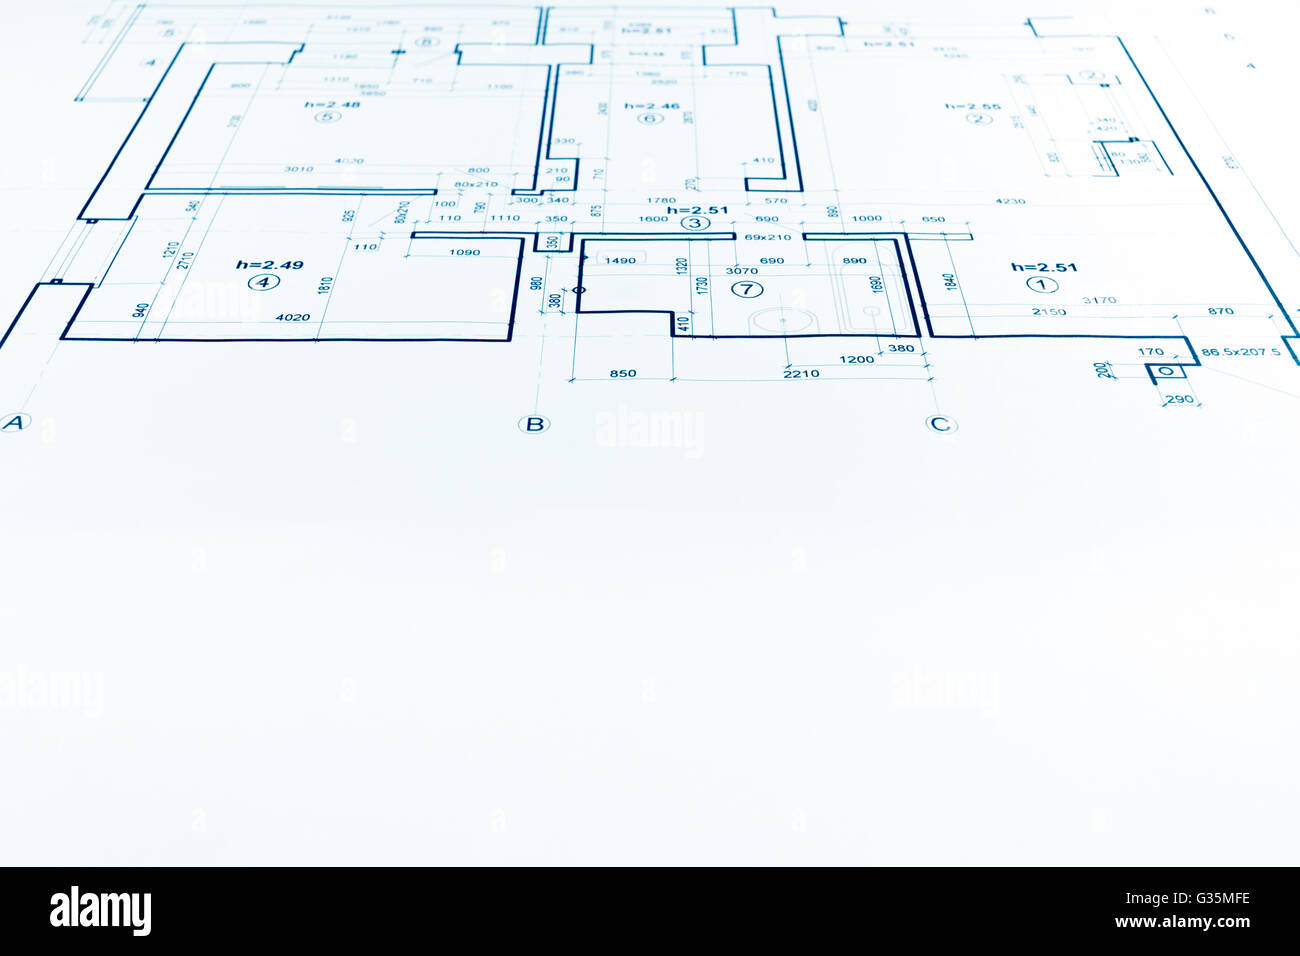 Architectural project technical drawing construction plan architectural project technical drawing construction plan blueprint malvernweather Gallery